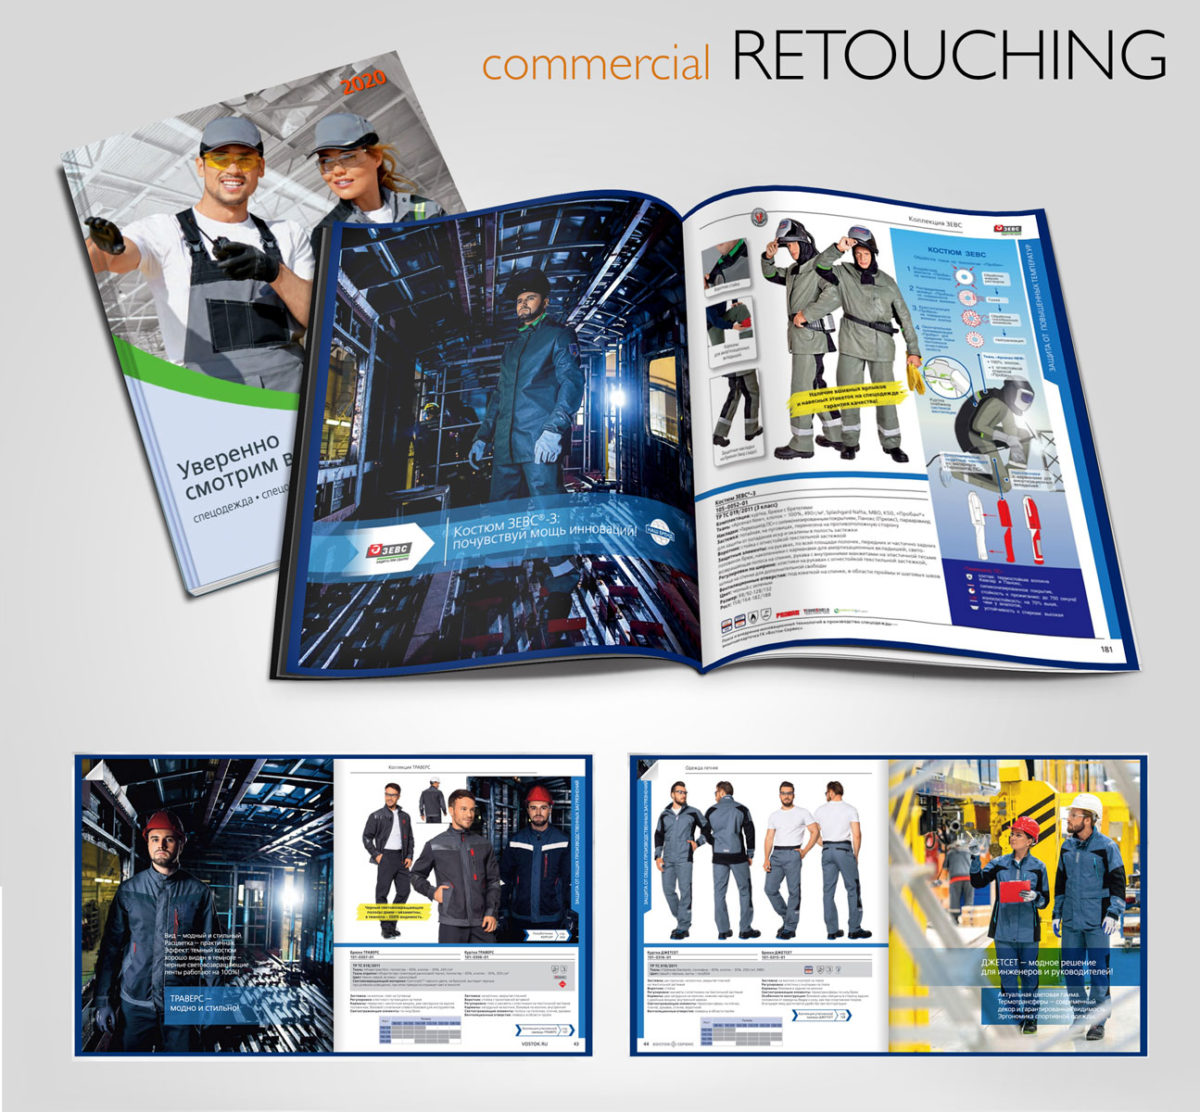 commercial retouching